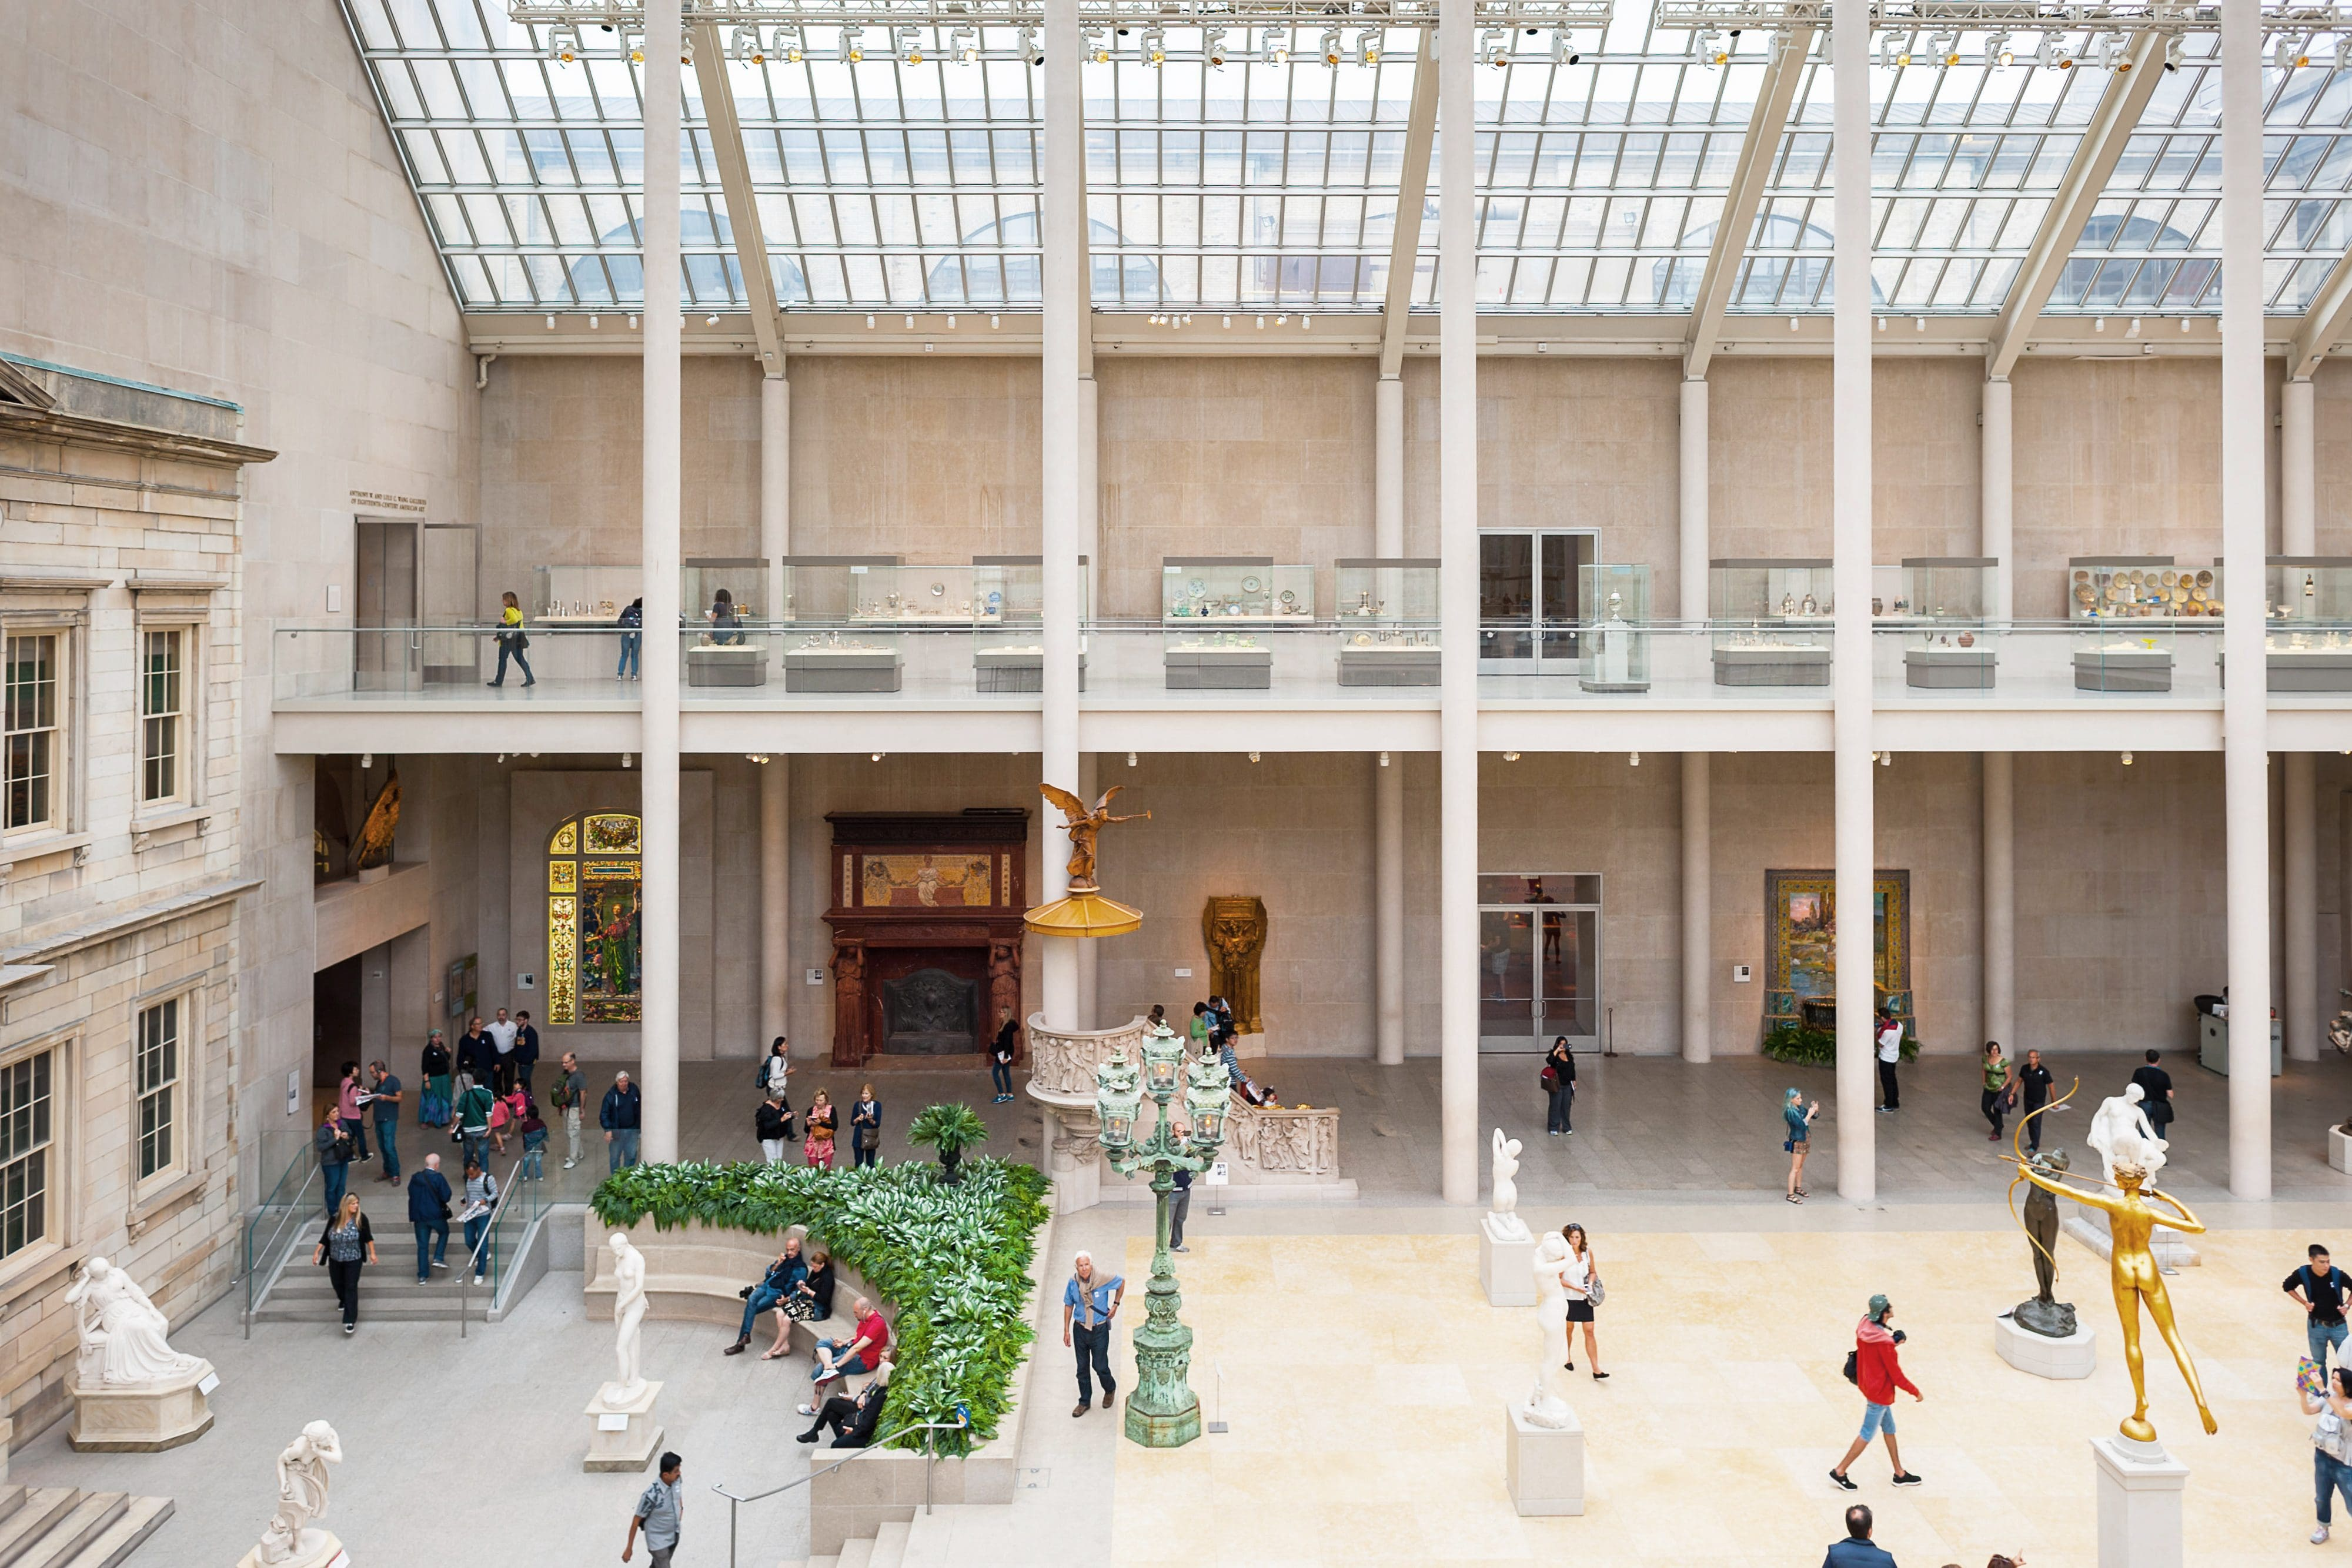 Overhead shot of the The American Wing conservatory showing people studying the art and sculptures